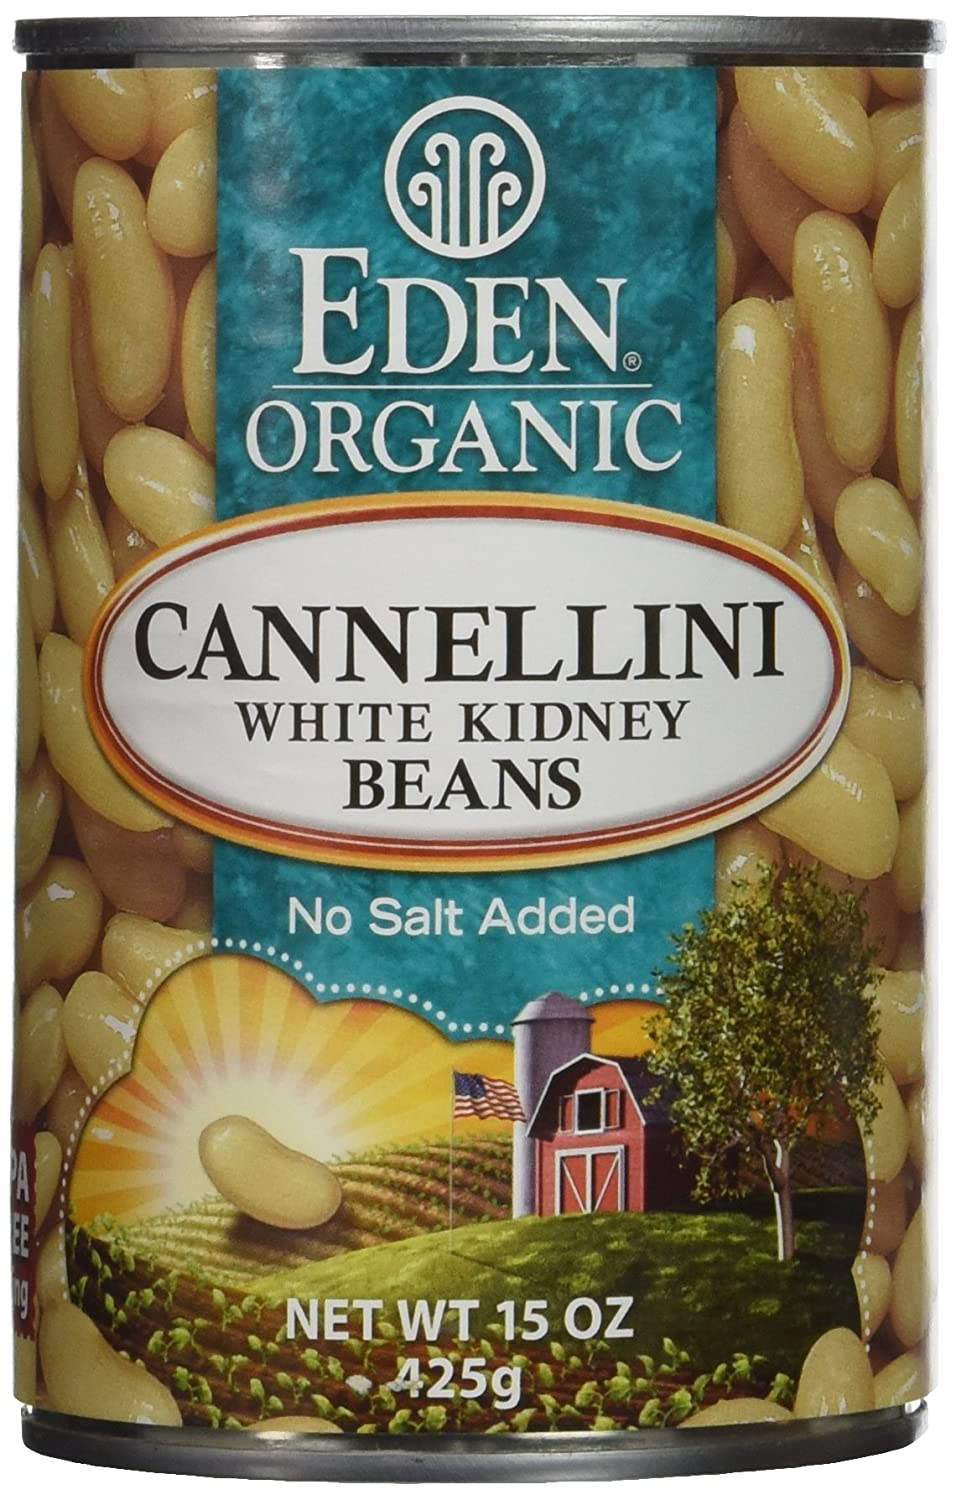 Amazon.com : Eden Organic Cannellini White Kidney Beans, No Salt ...